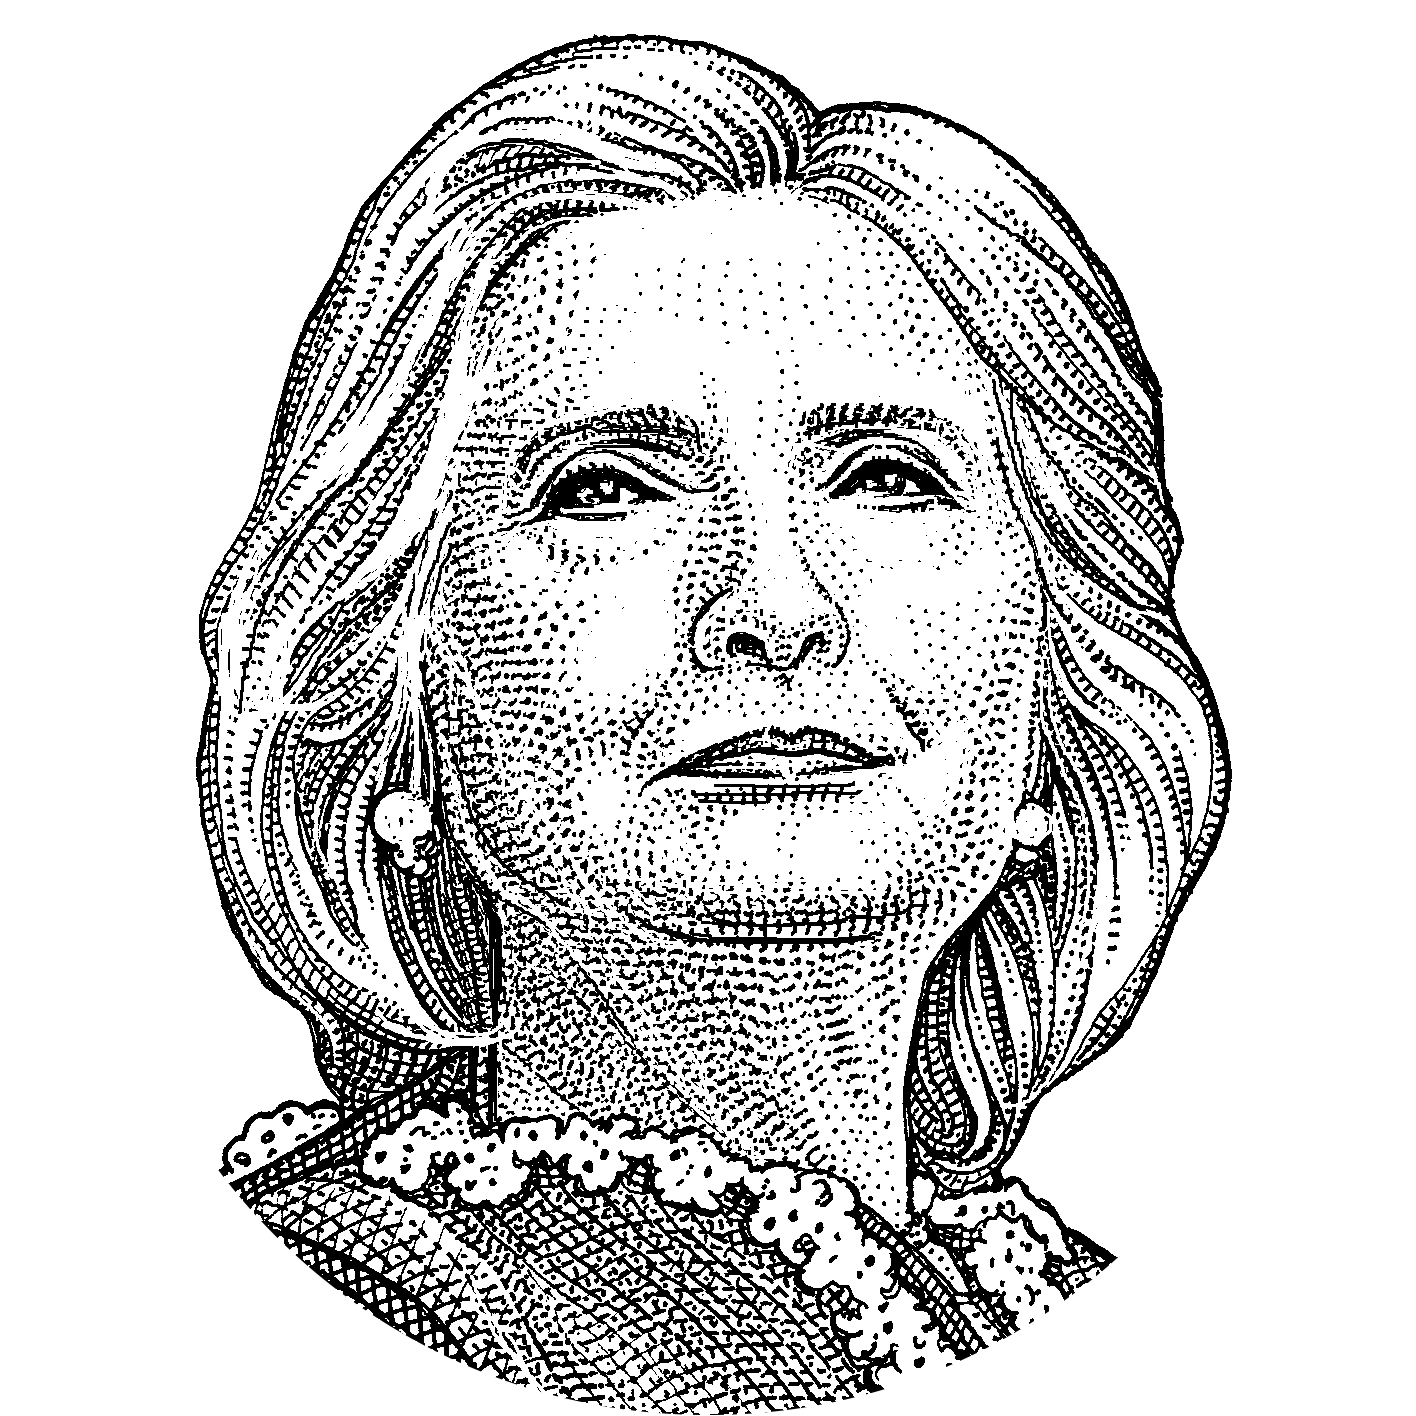 Vote drawing easy. Collection of hillary